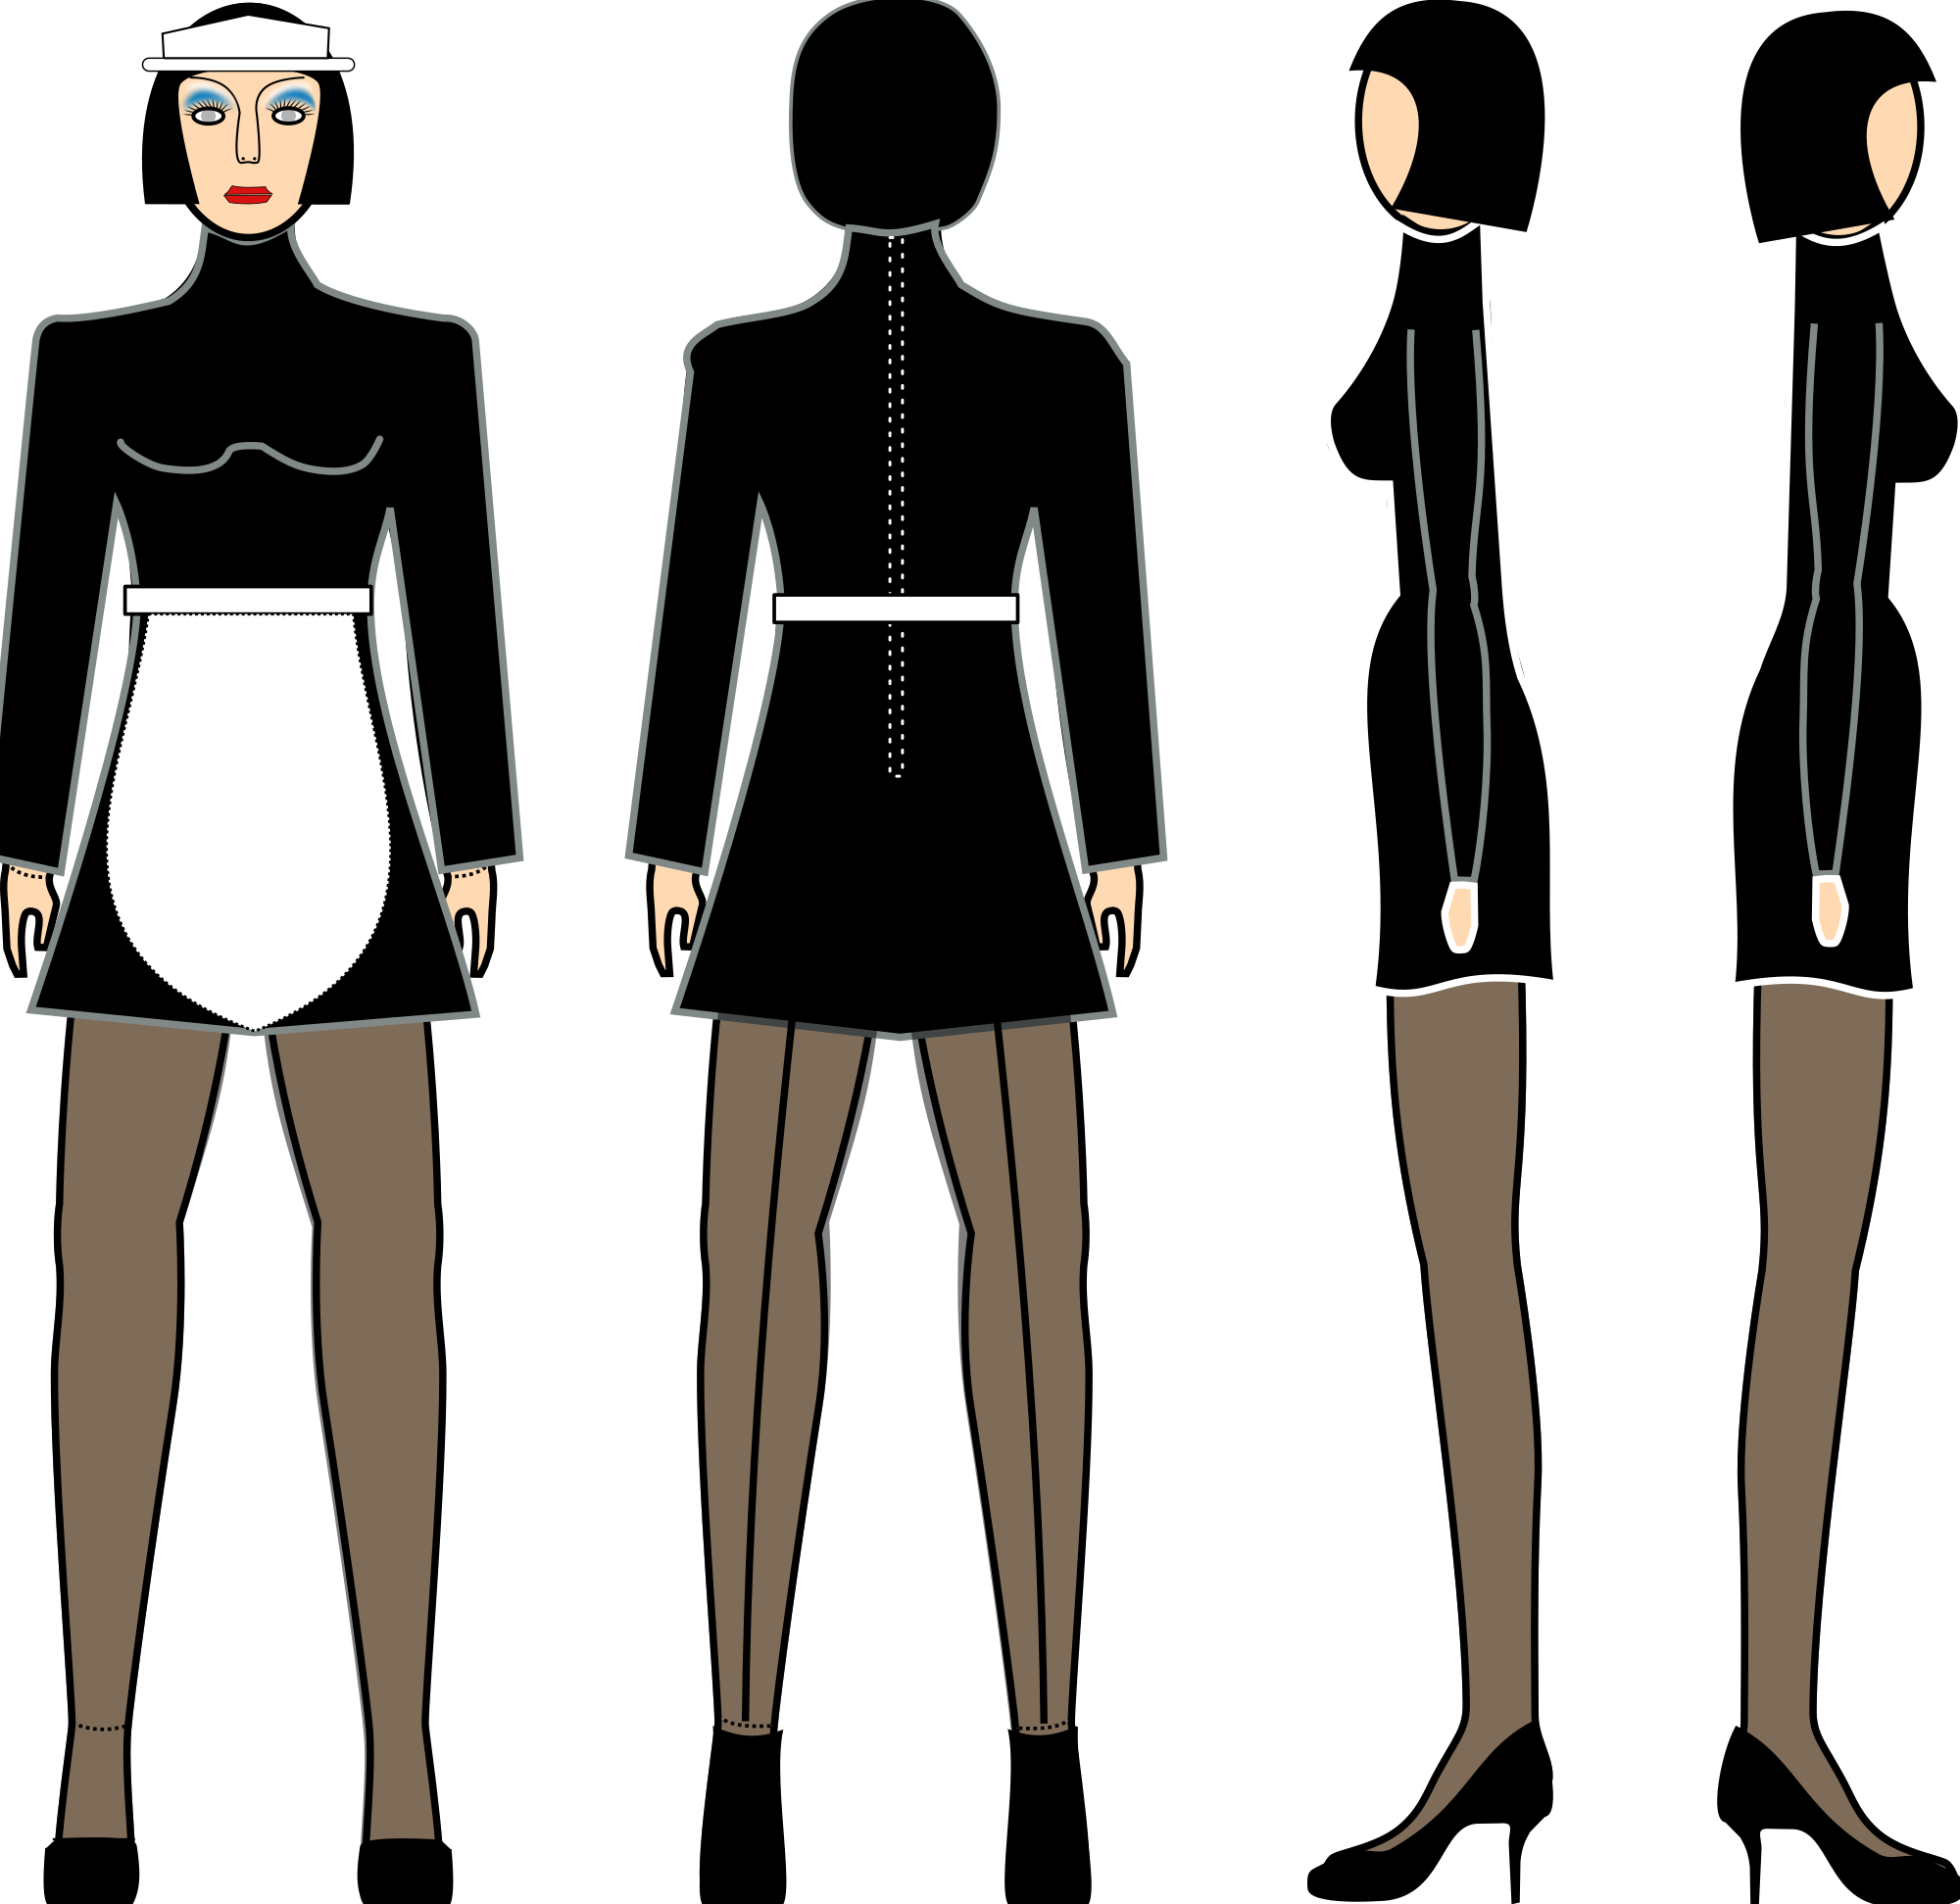 Maid svg #2, Download drawings